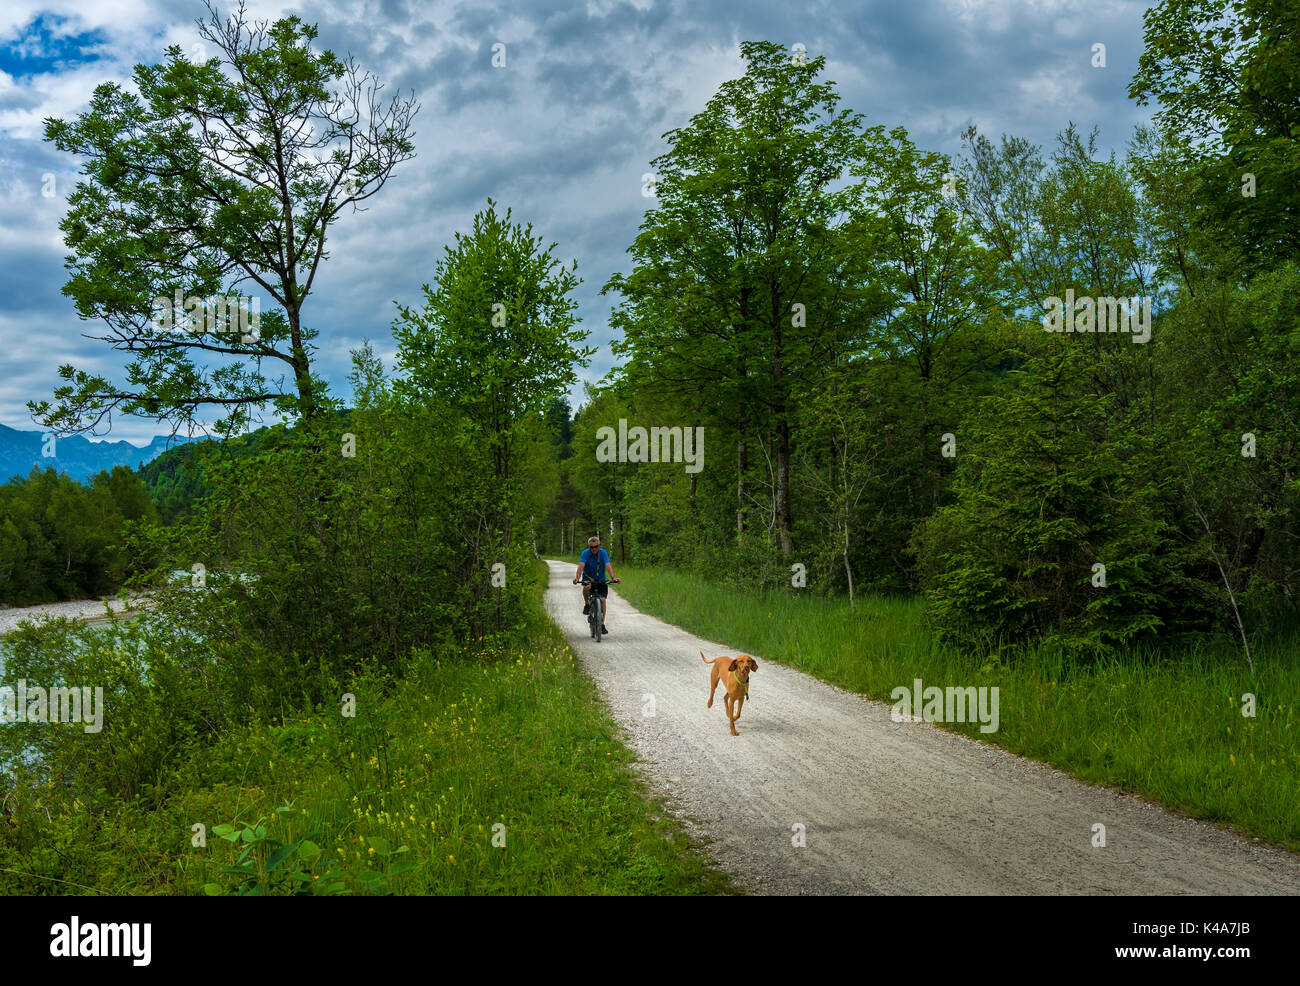 Tour With Dog - Stock Image